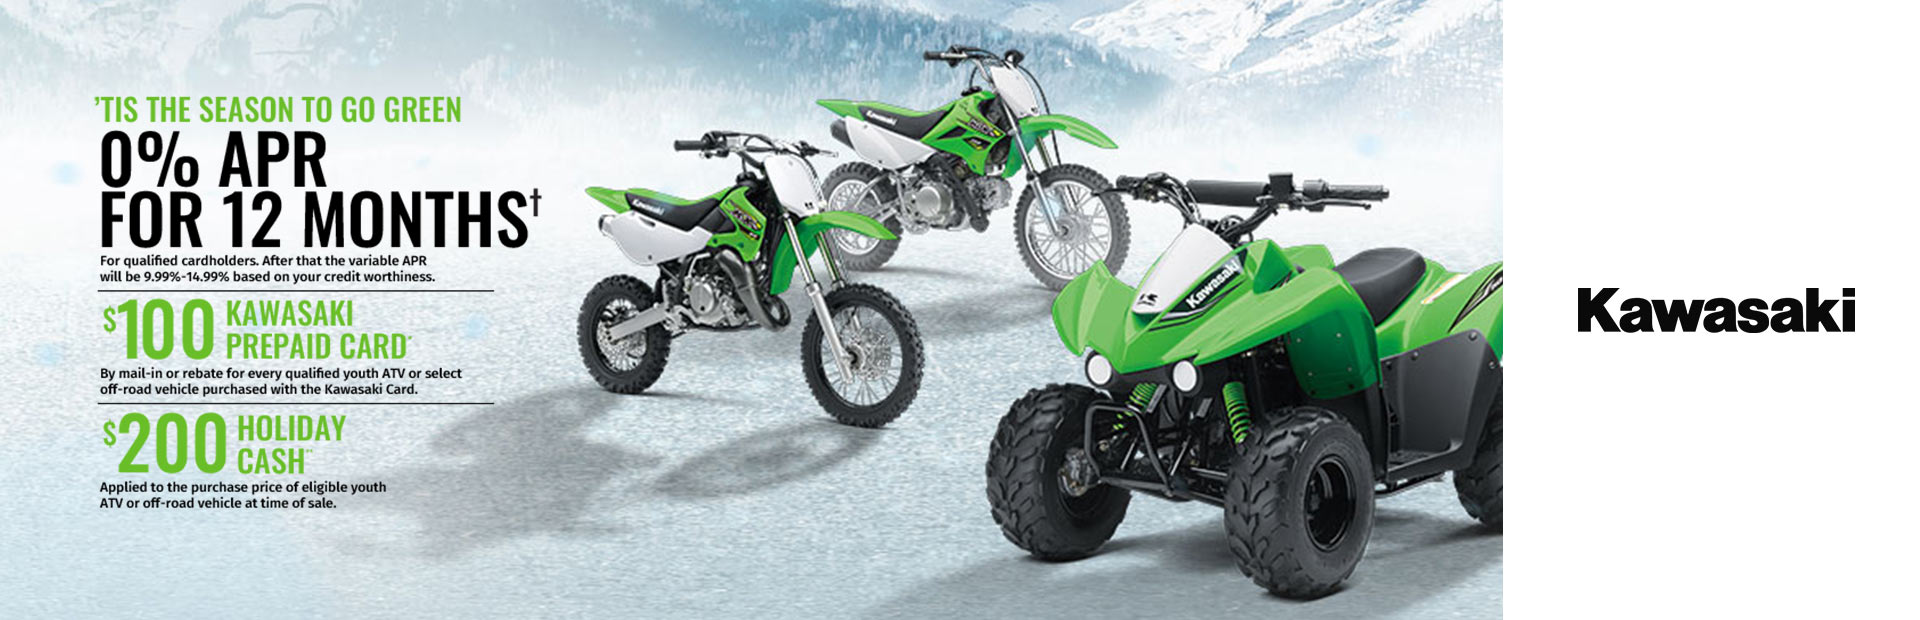 Kawasaki: Kawasaki Holiday Savings - Youth ATVs, Off-Road